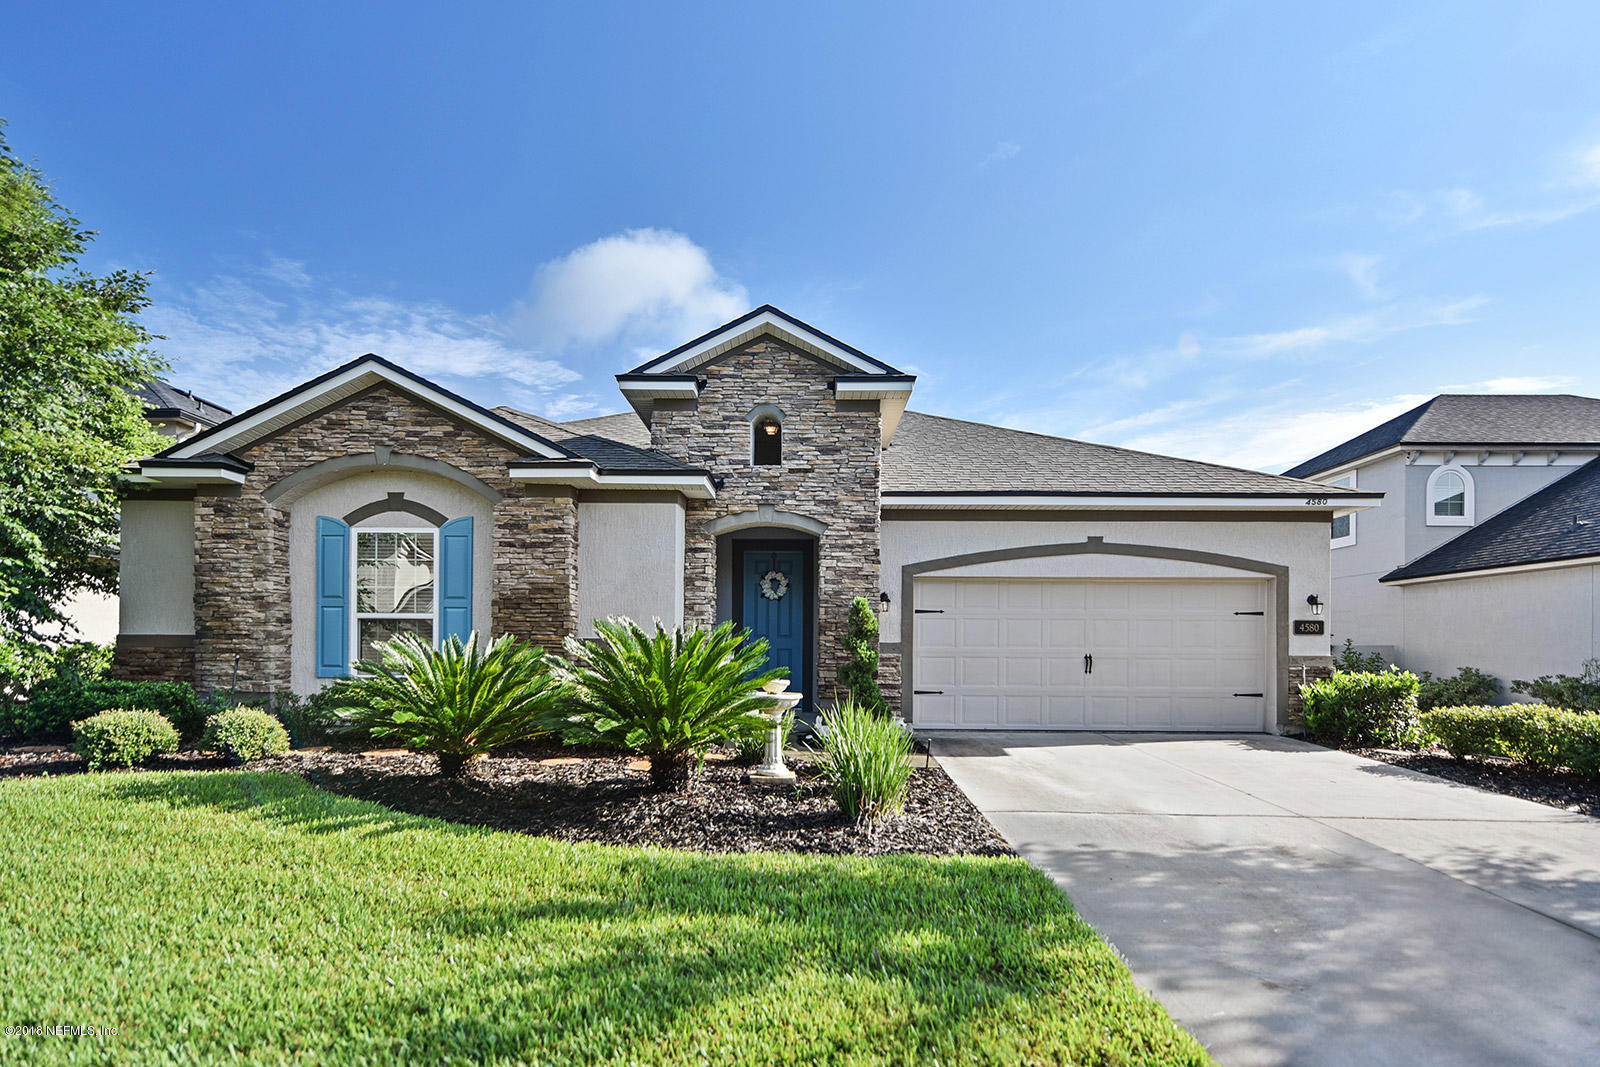 4580 GOLF BROOK, ORANGE PARK, FLORIDA 32065, 4 Bedrooms Bedrooms, ,3 BathroomsBathrooms,Residential - single family,For sale,GOLF BROOK,949526